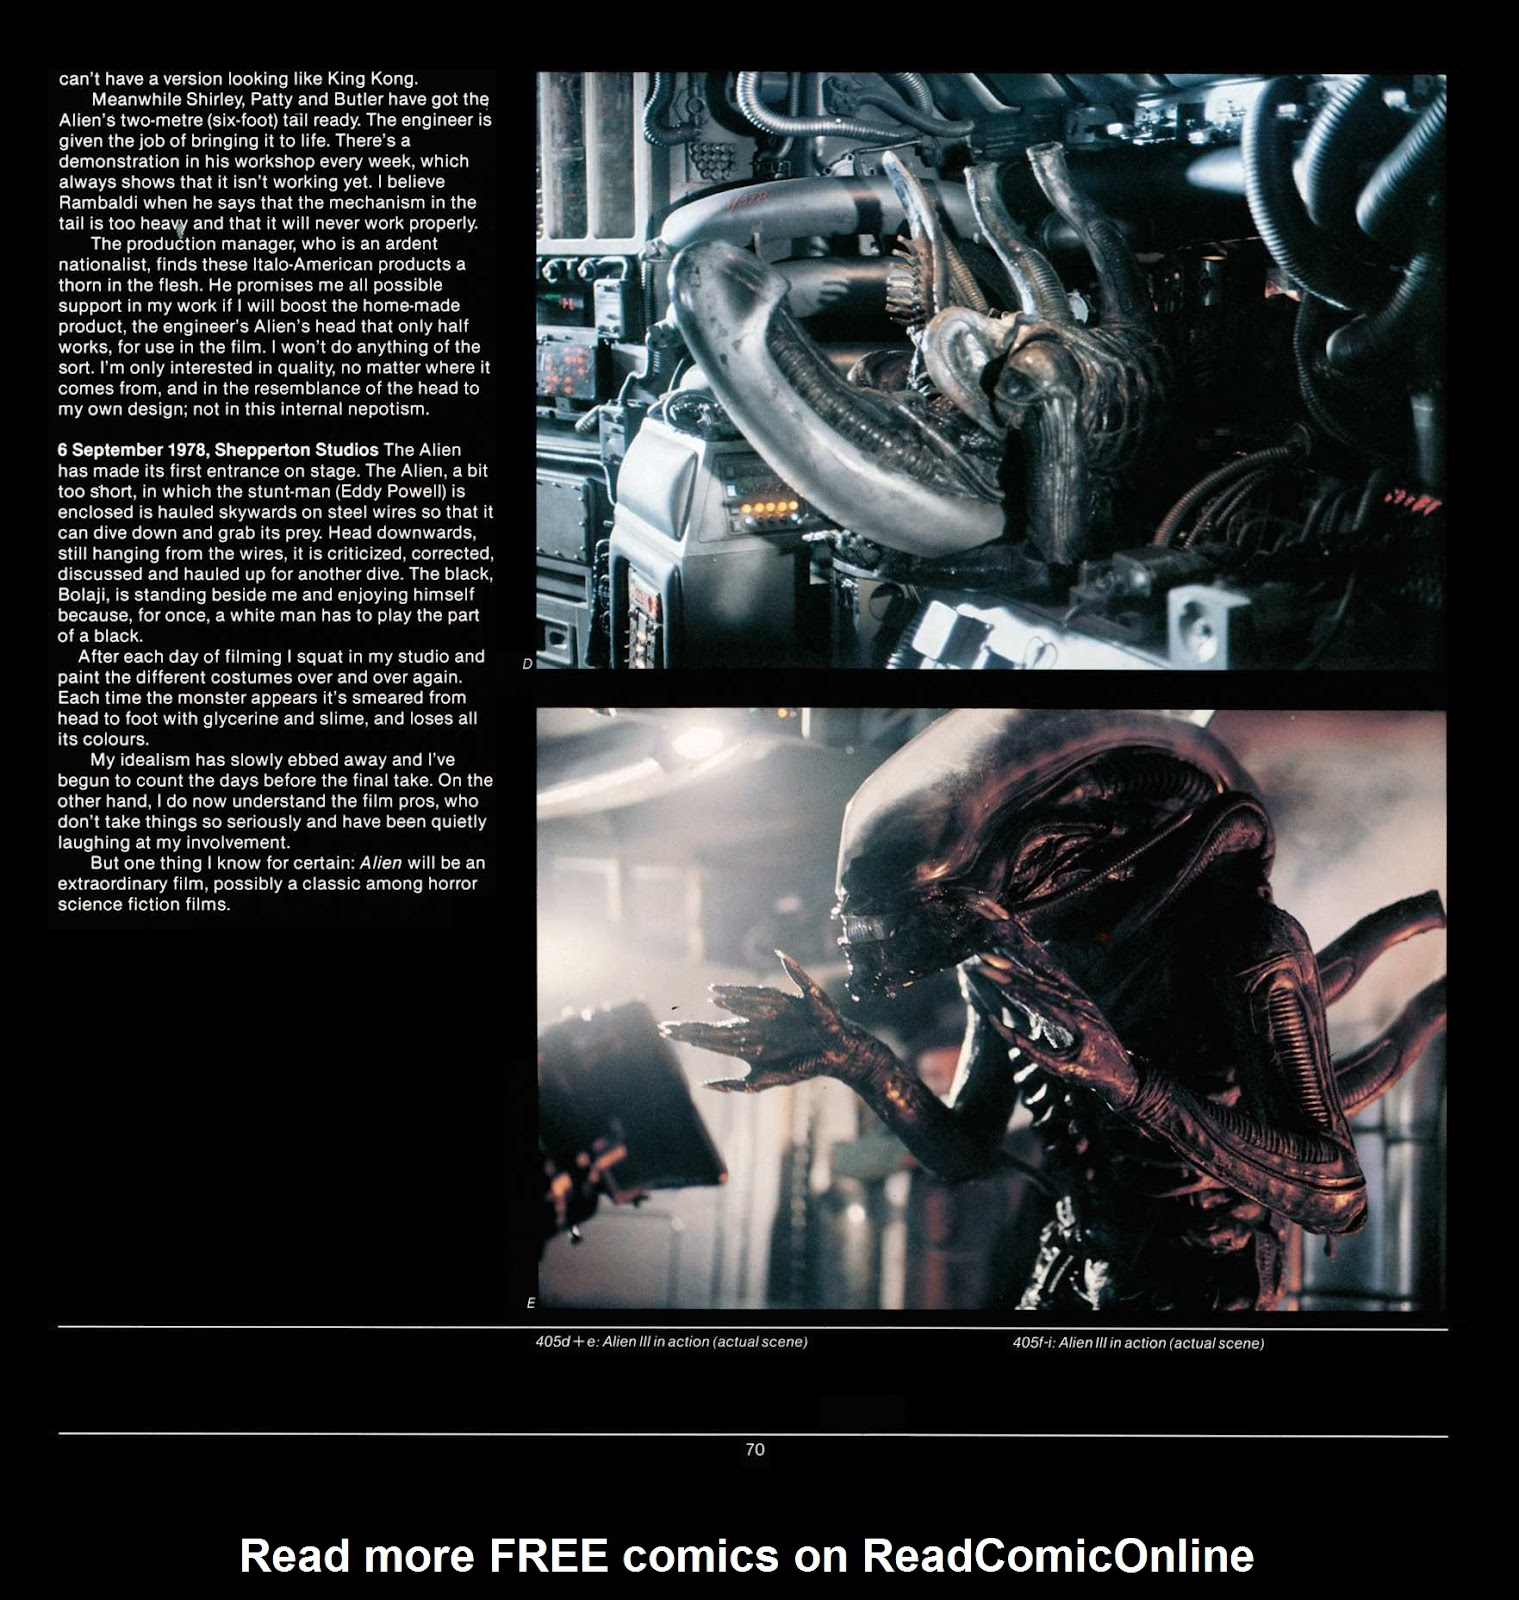 Read online Giger's Alien comic -  Issue # TPB - 72